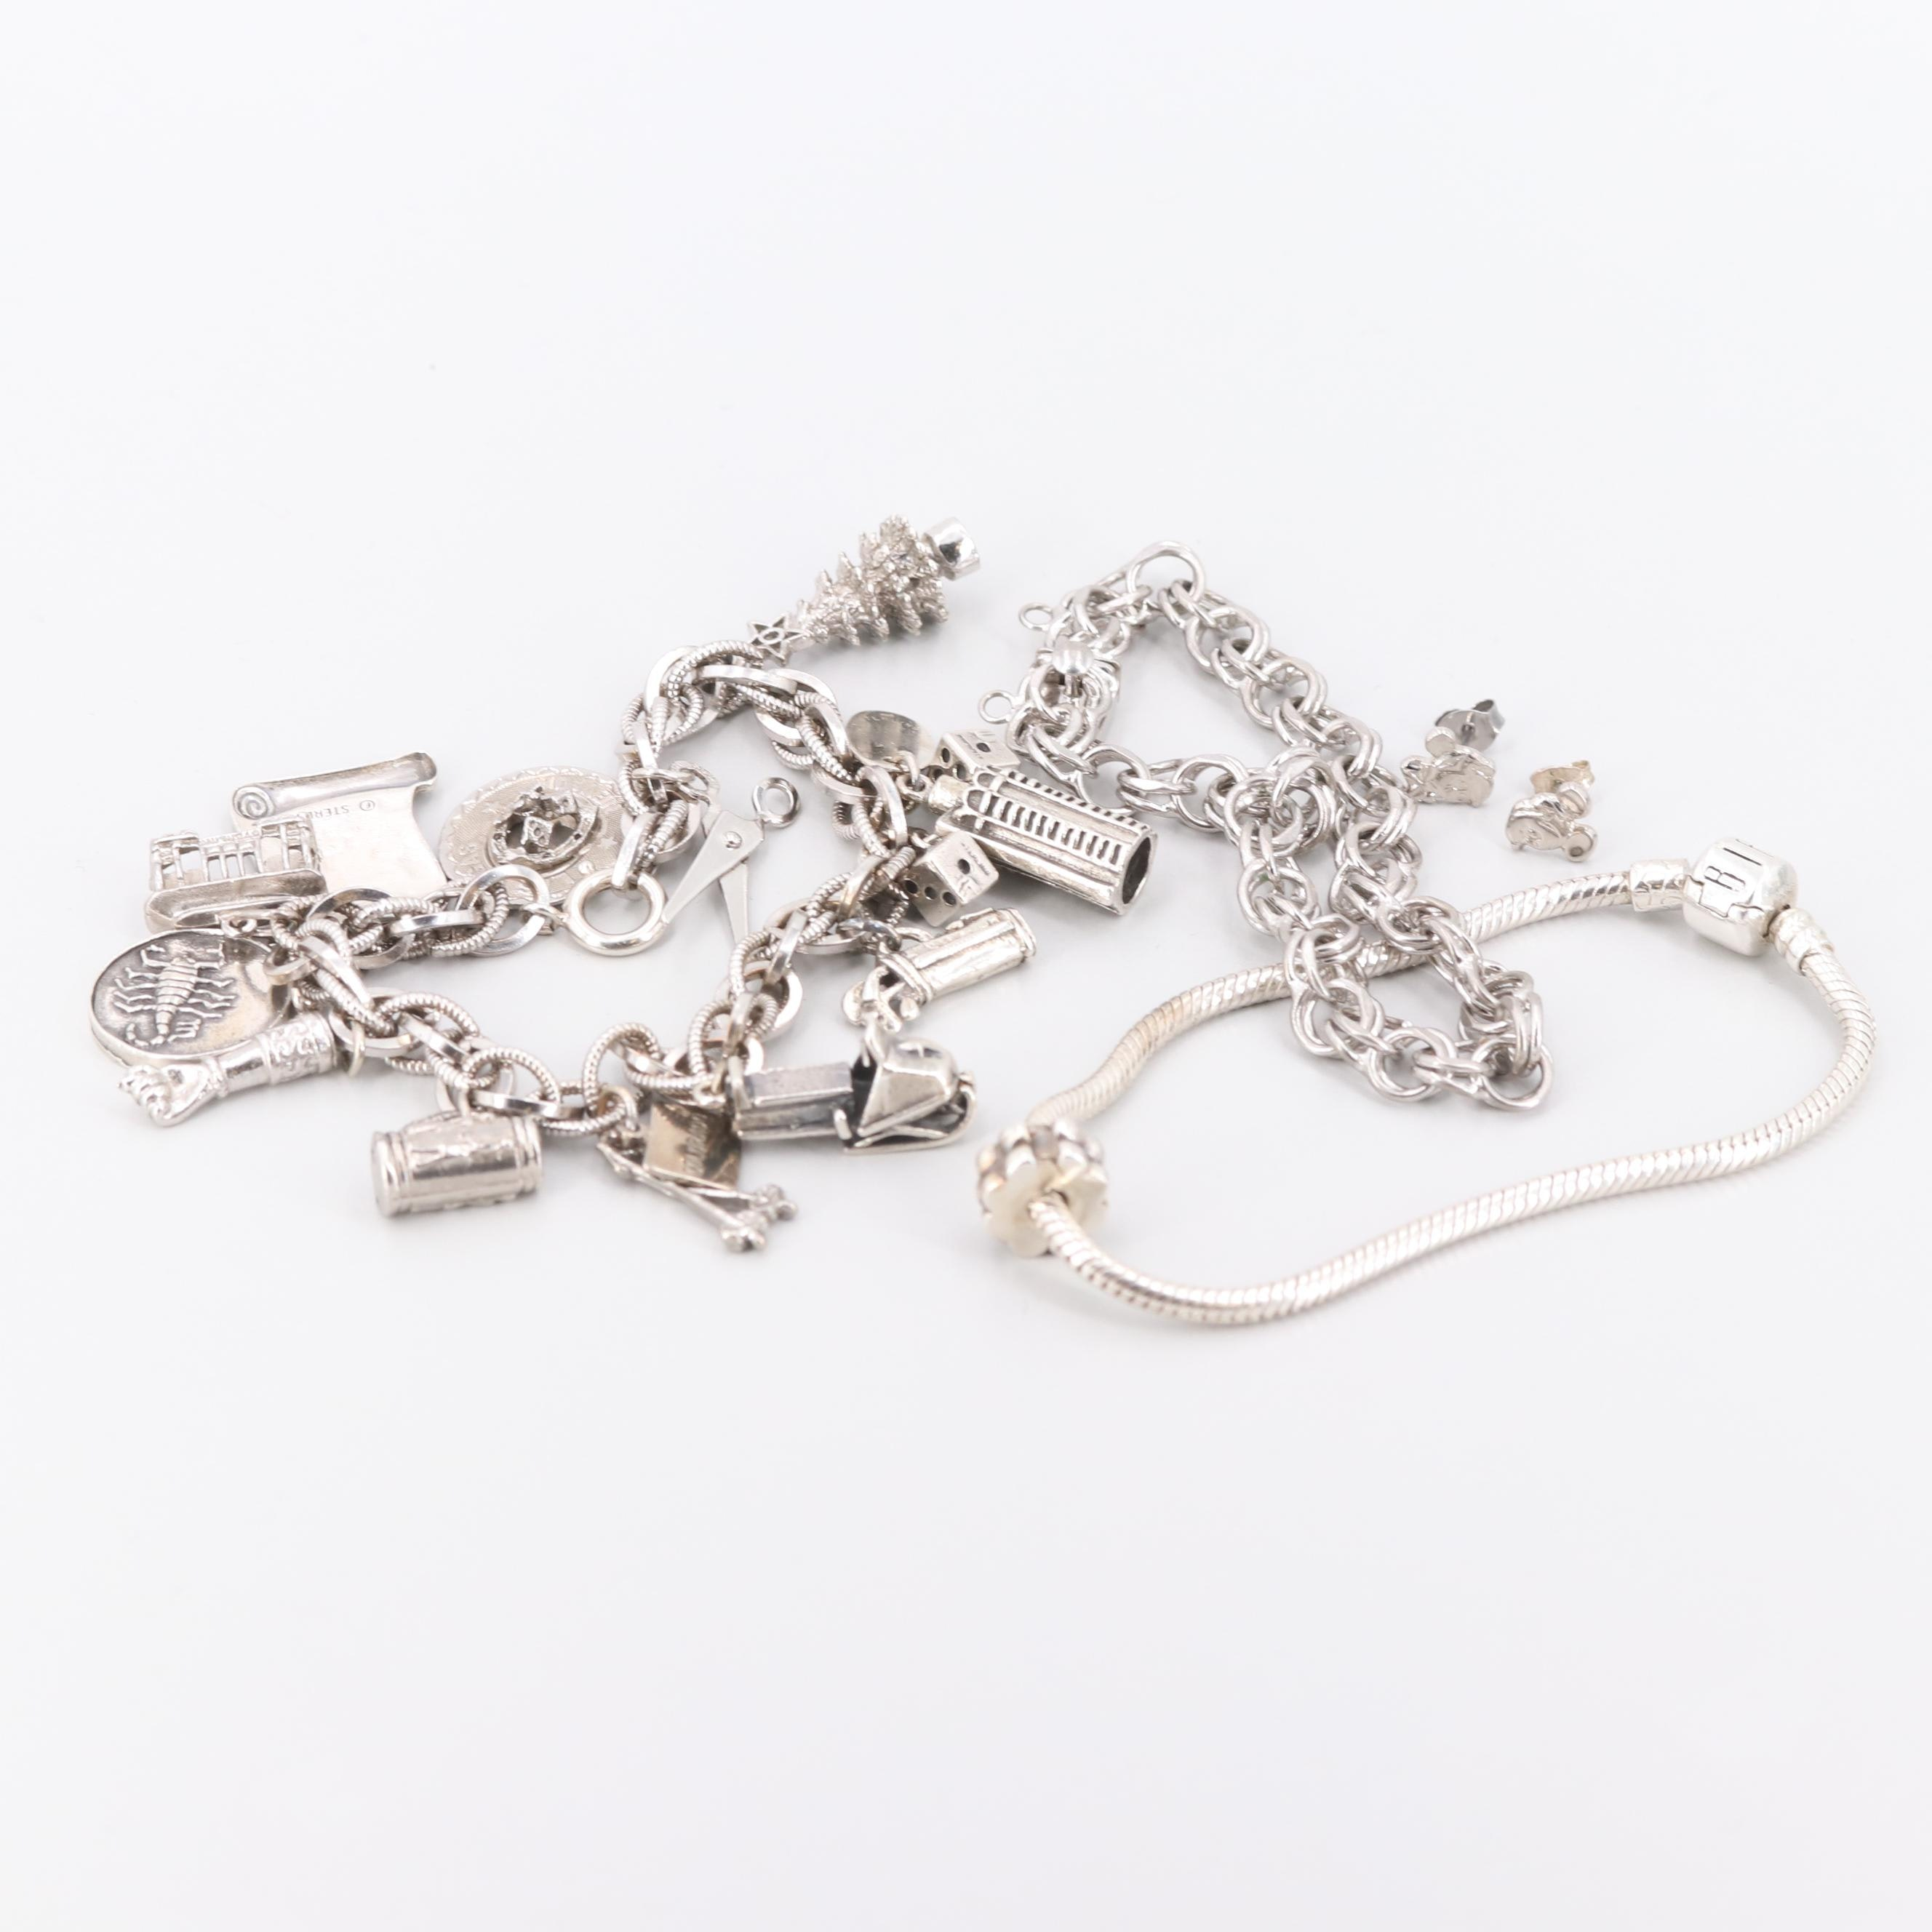 Sterling Silver and Silver Tone Bracelets Including Disney Stud Earrings